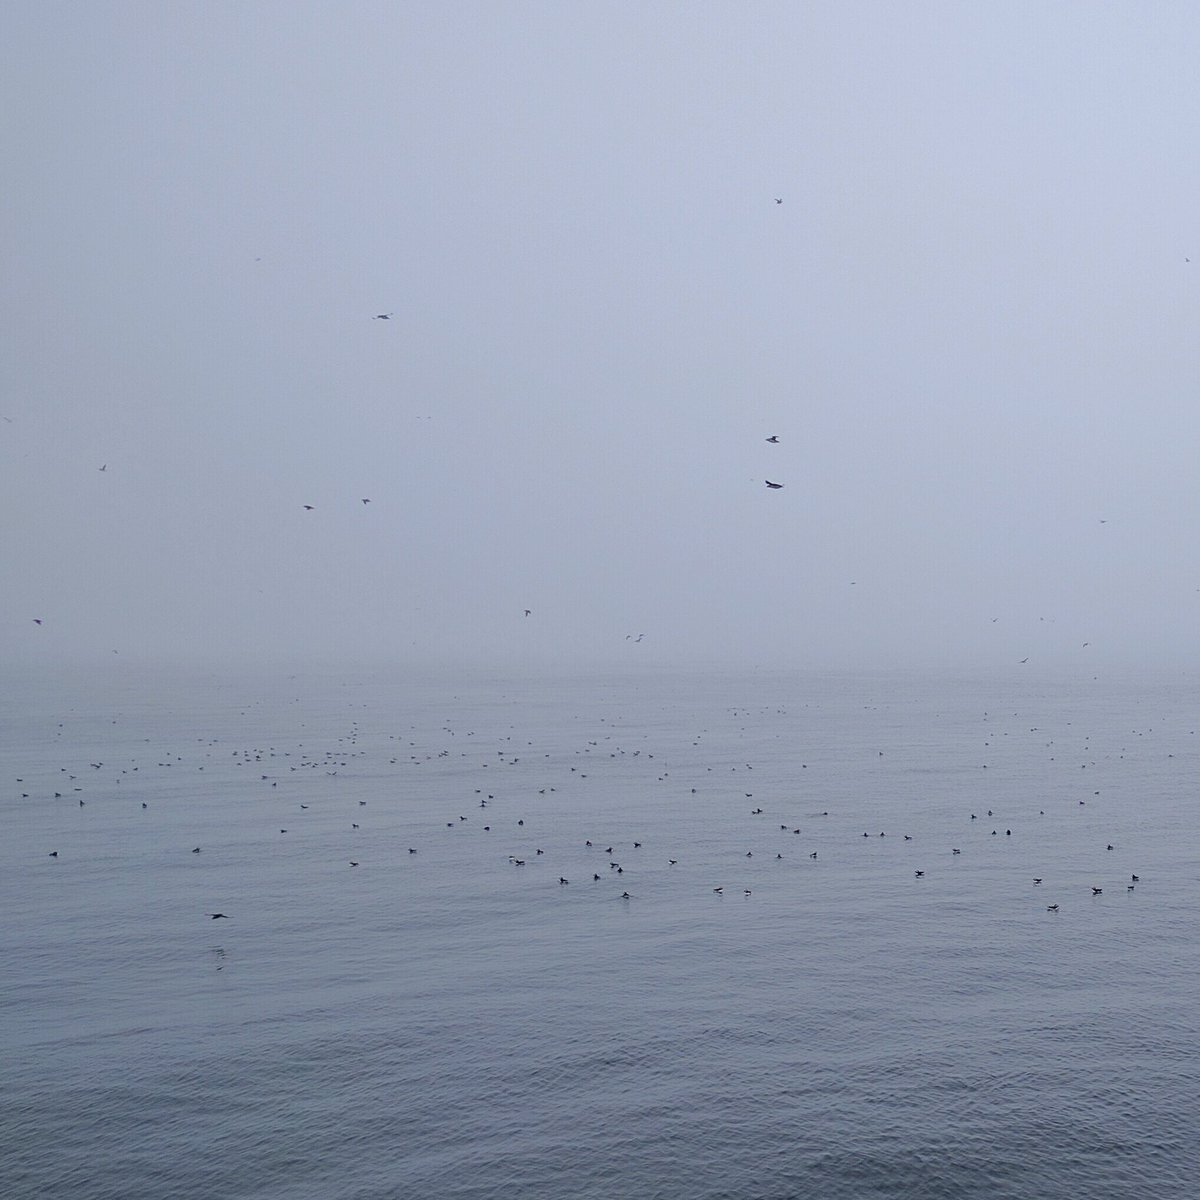 So many puffins during the O'Brien's Boat Tour in St. John's, Newfoundland and Labrador